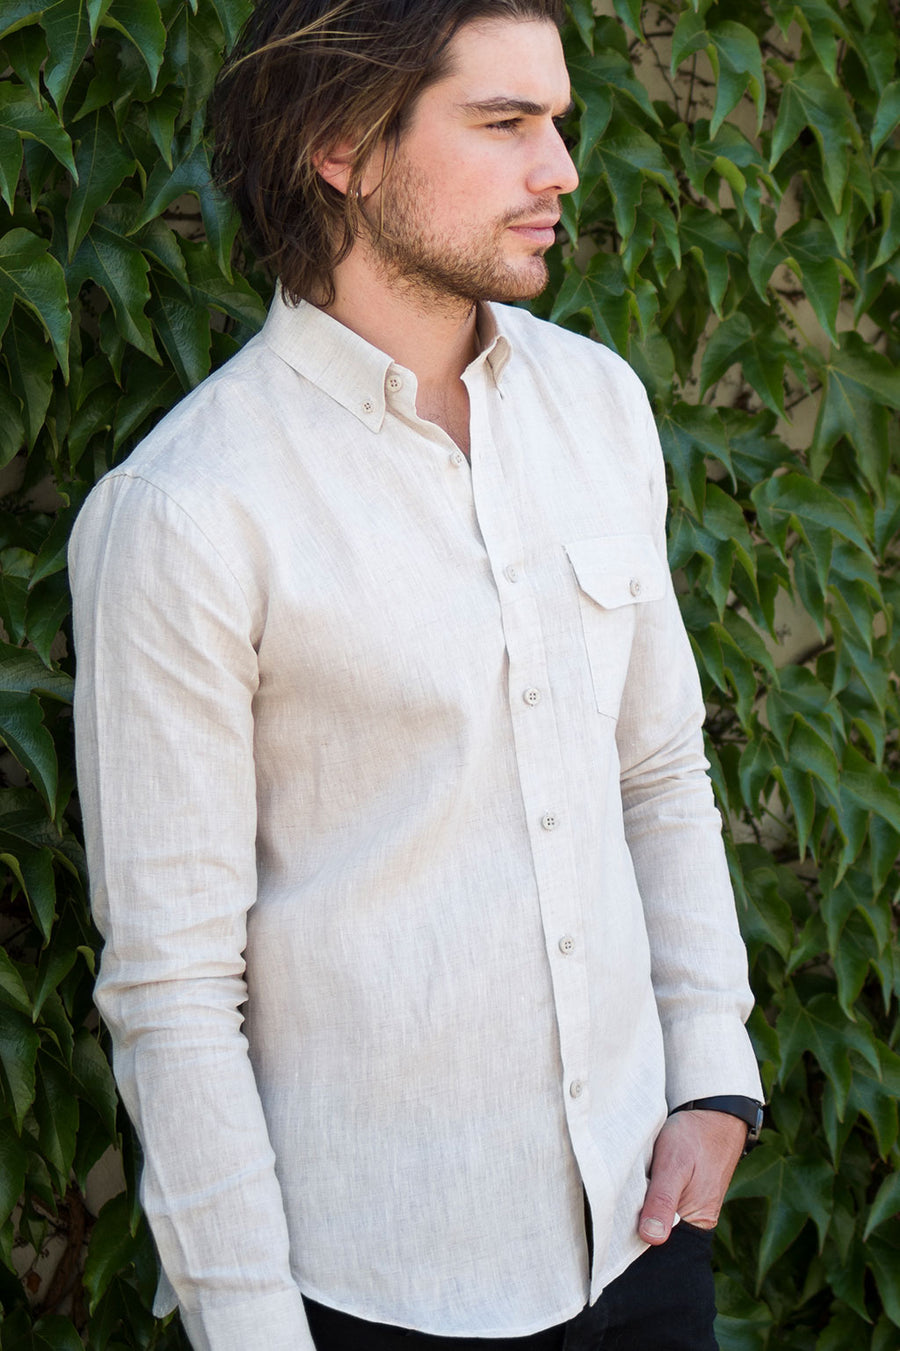 LONG SLEEVE OXFORD SHIRT IN NATURAL